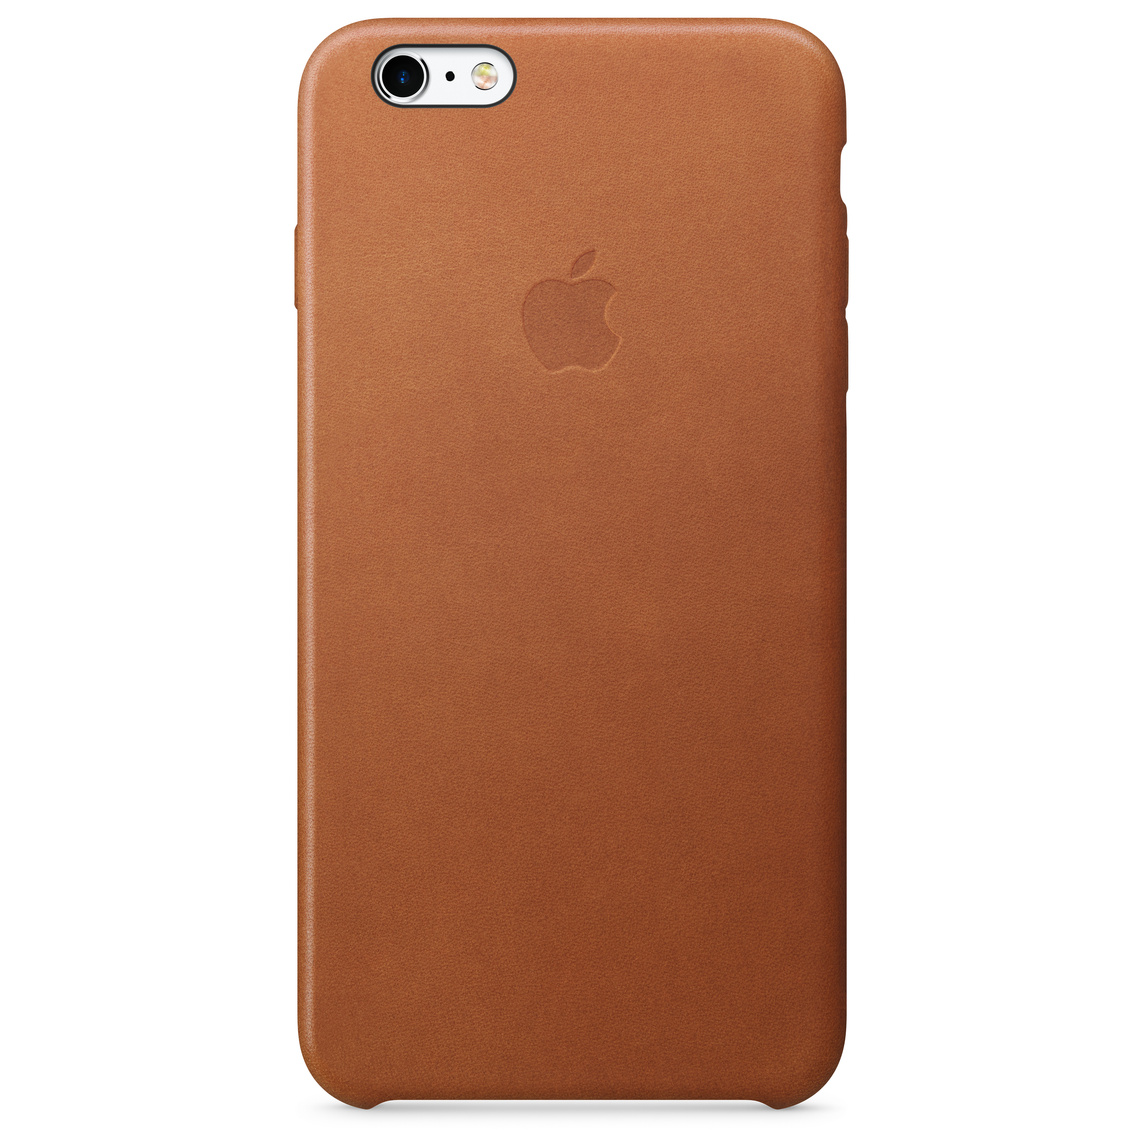 the best attitude 4b157 d2bb8 iPhone 6 Plus / 6s Plus Leather Case - Saddle Brown